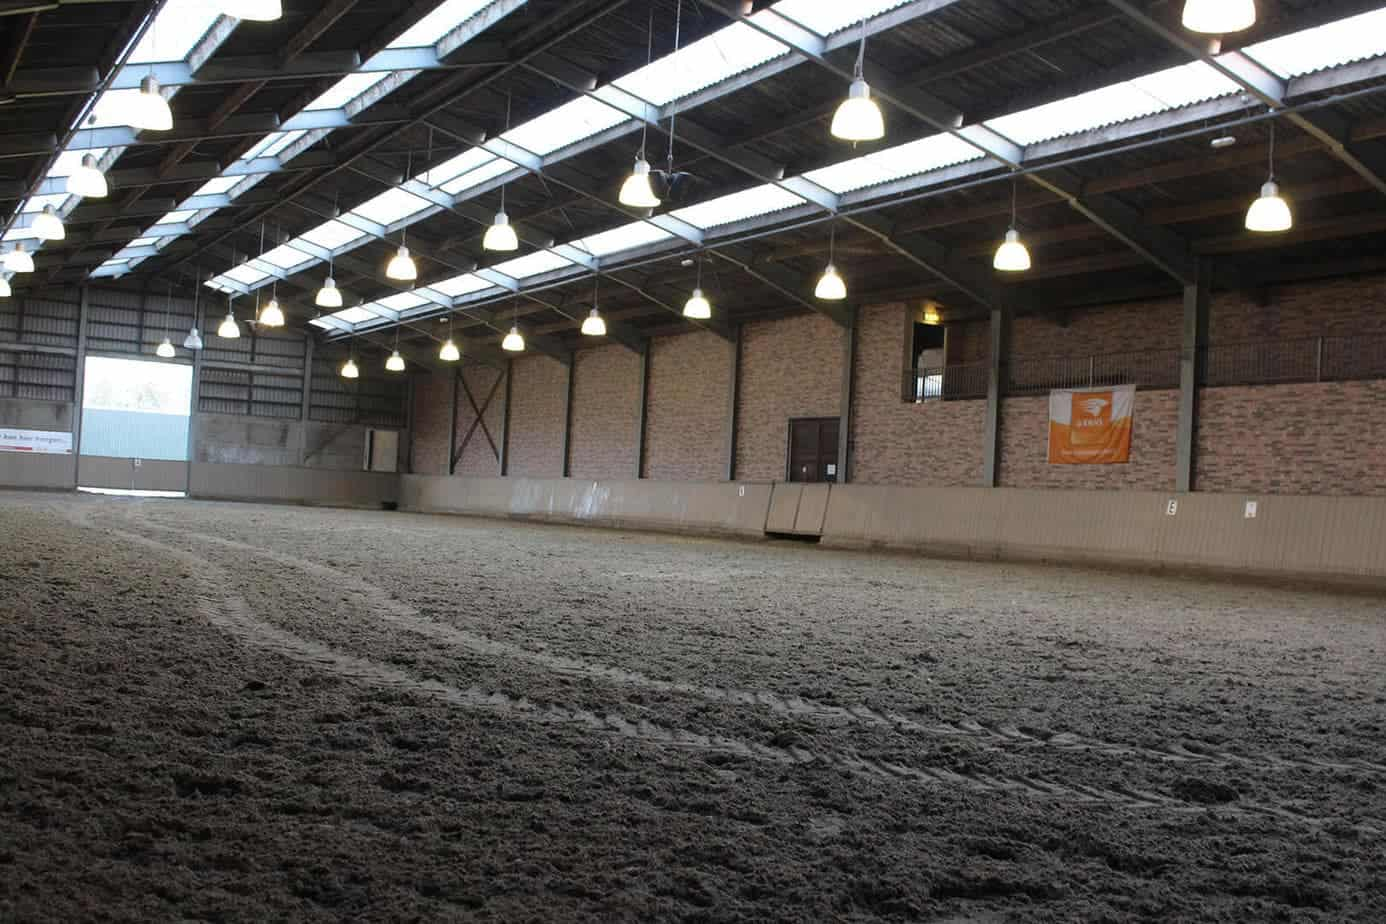 Internationale manege Purmerend